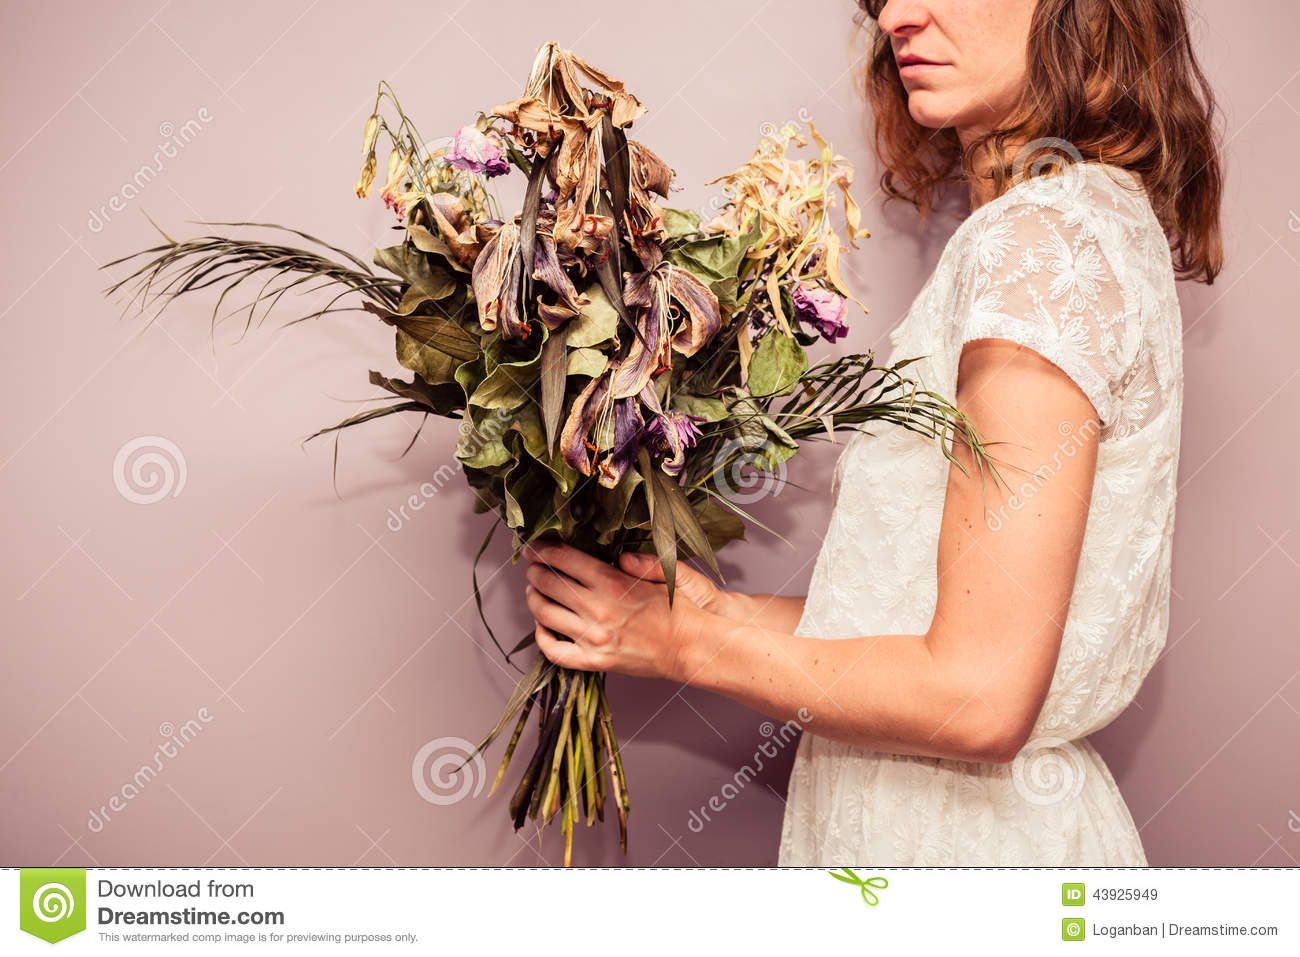 Young Woman Holding Bouquet Of Dead Flowers Stock Image Image Of